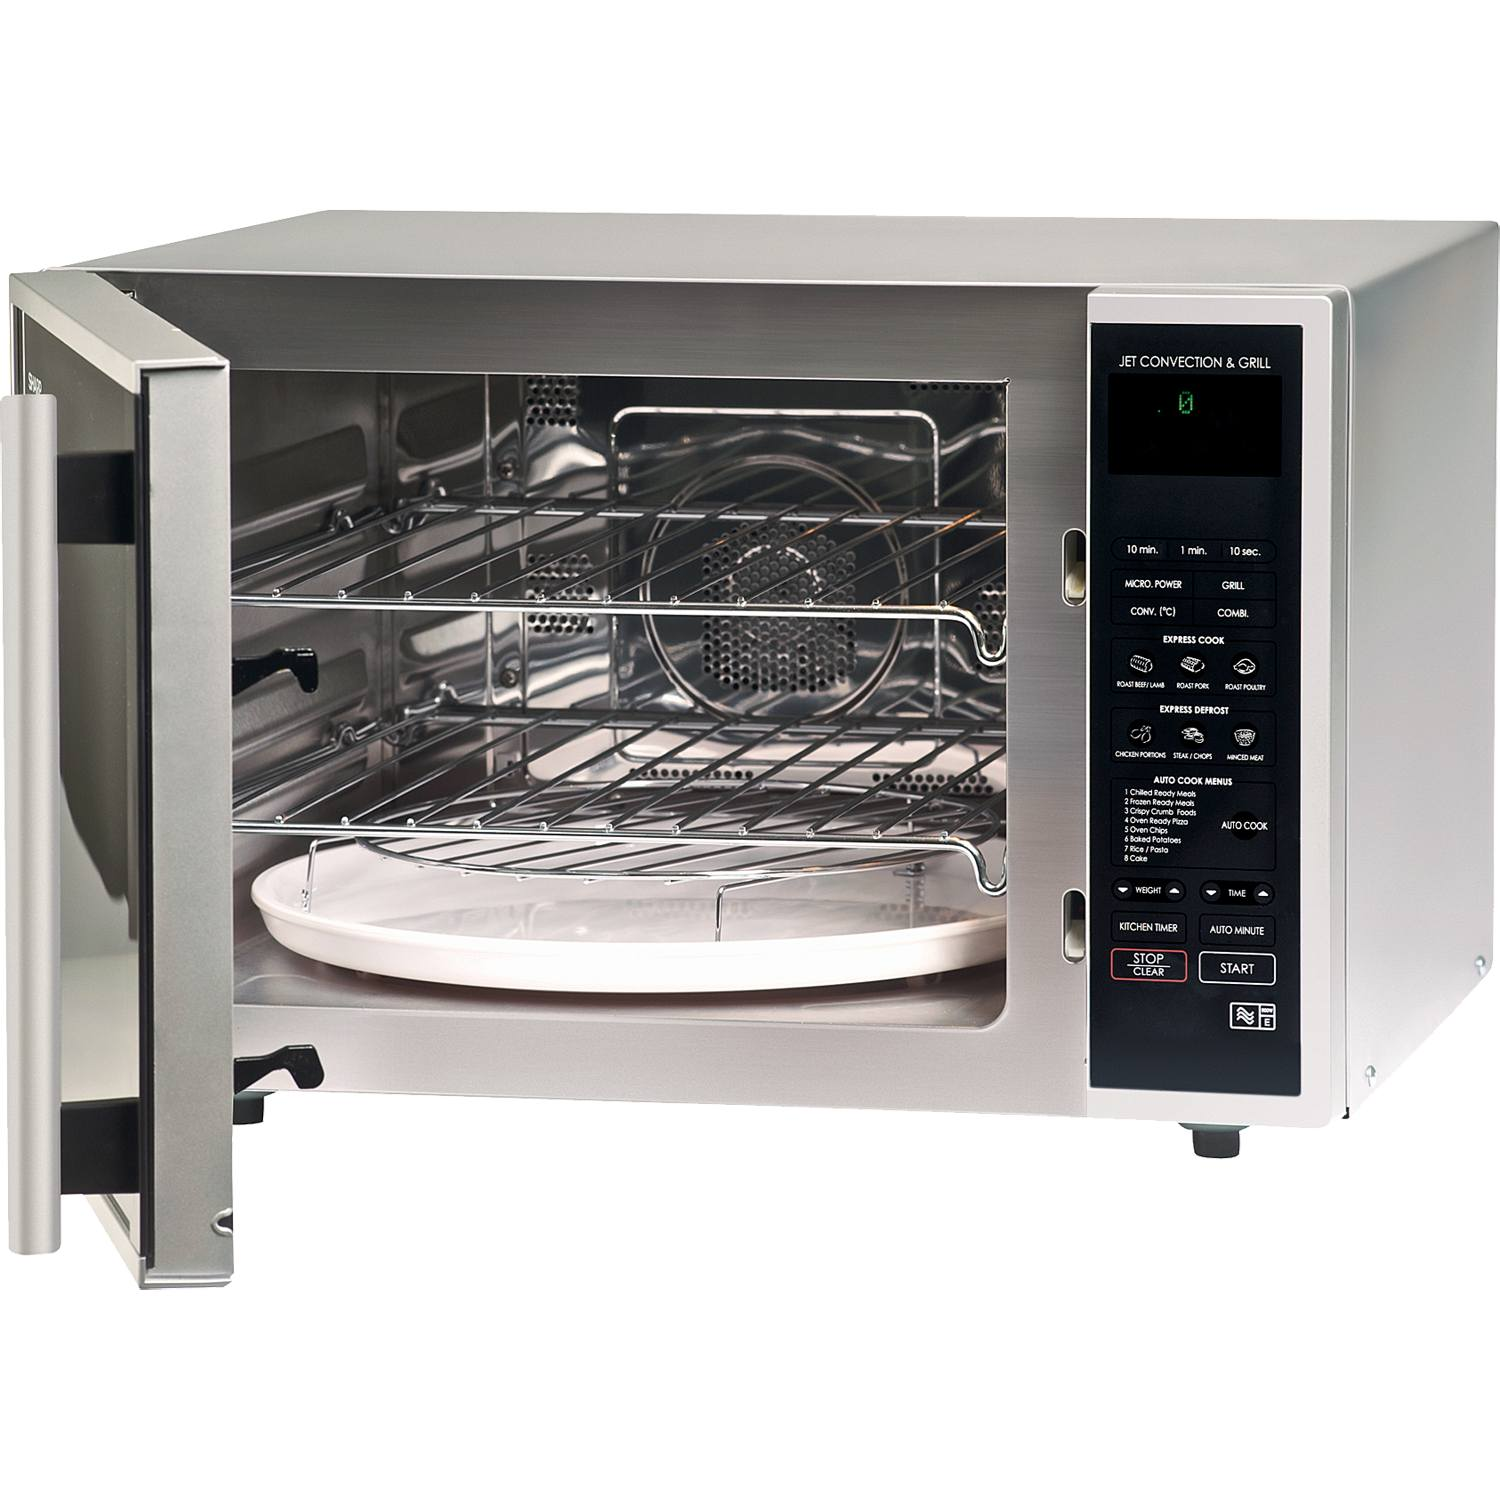 Sharp R959slmaa 40l 12 Programmes Combination Microwave Oven In Silver Black 249 00